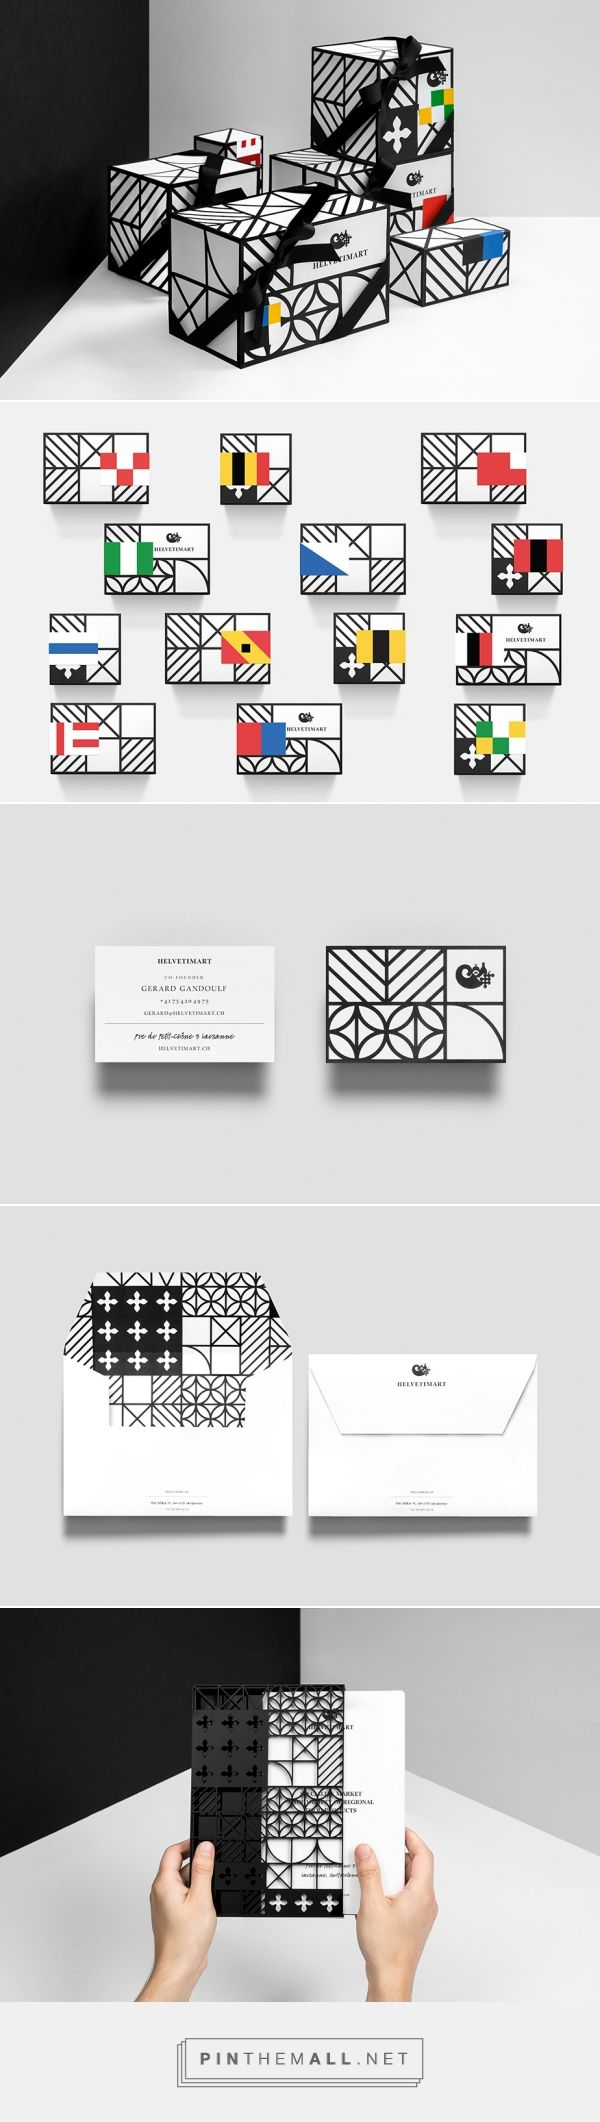 Helvetimart / FormFiftyFive... - a grouped images picture - Pin Them All